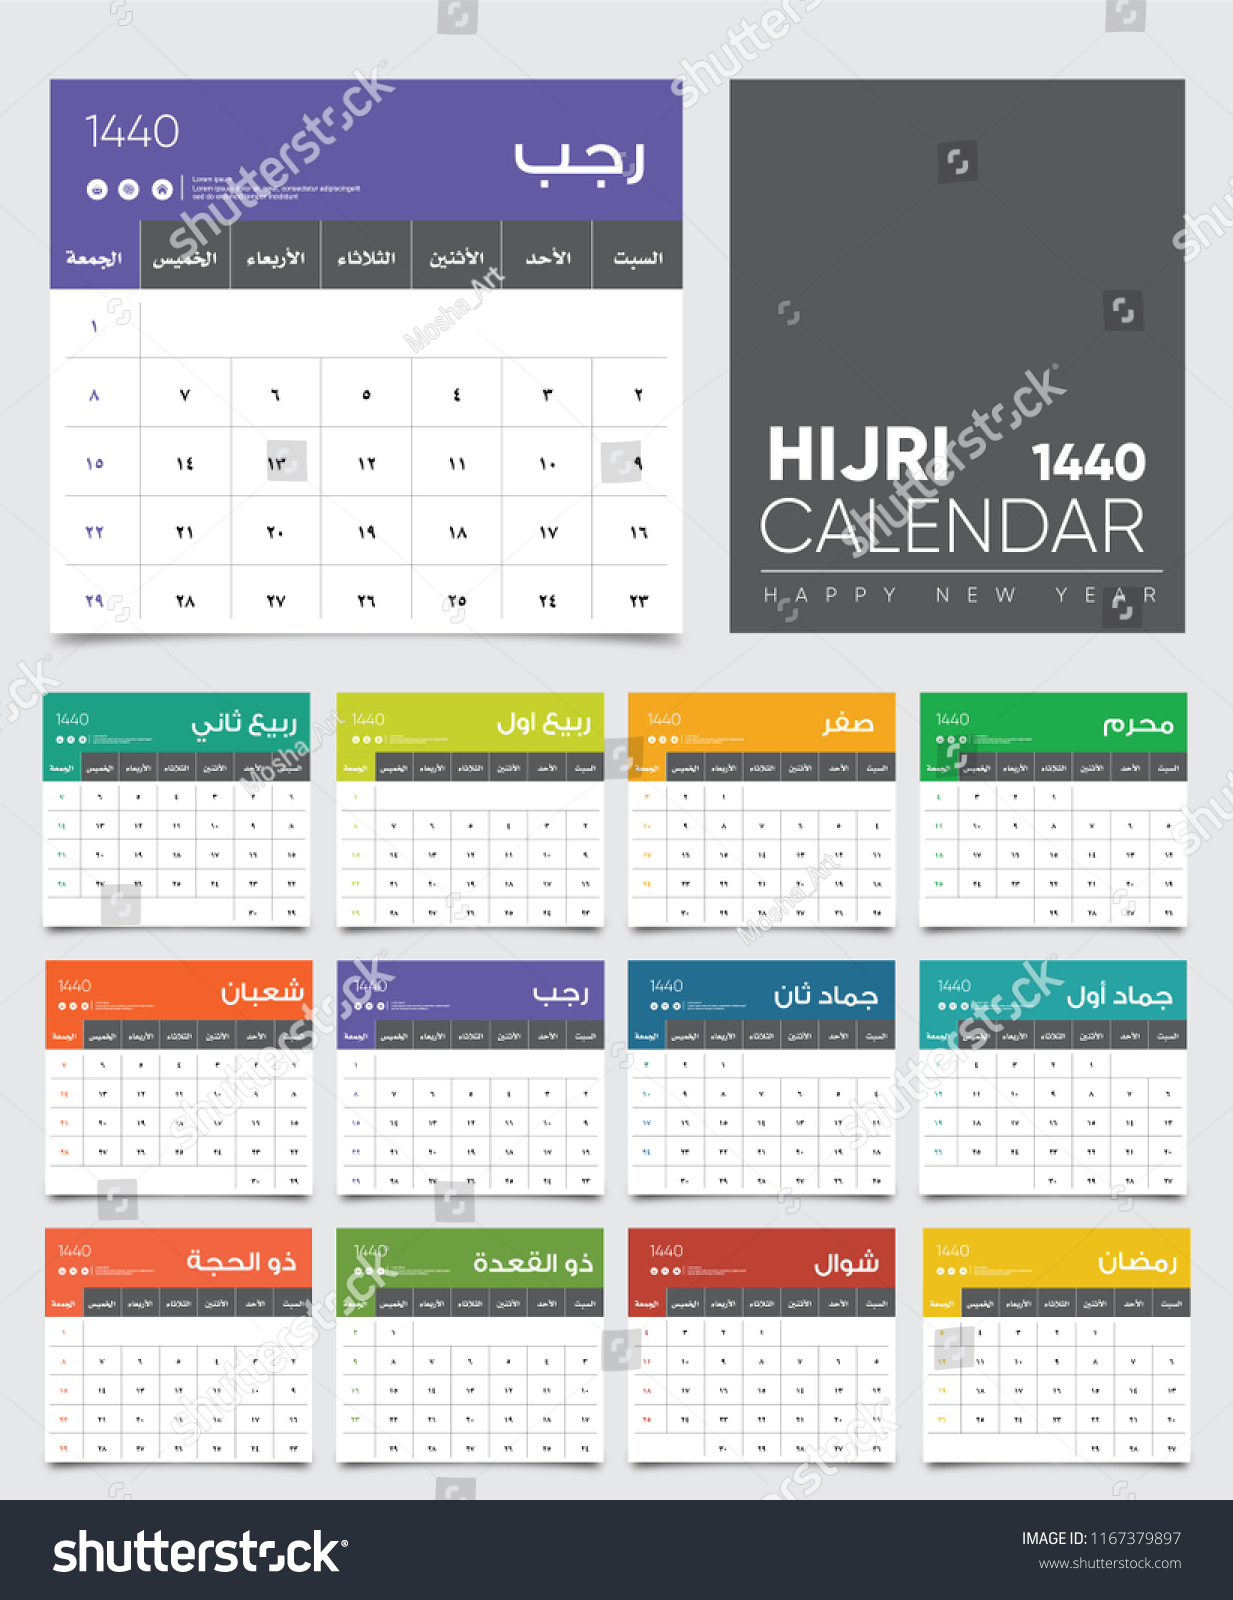 Islamic Hijri Calendar 1440 Arabic Calligraphy Stock Vector in 1440 Hijri Calendar